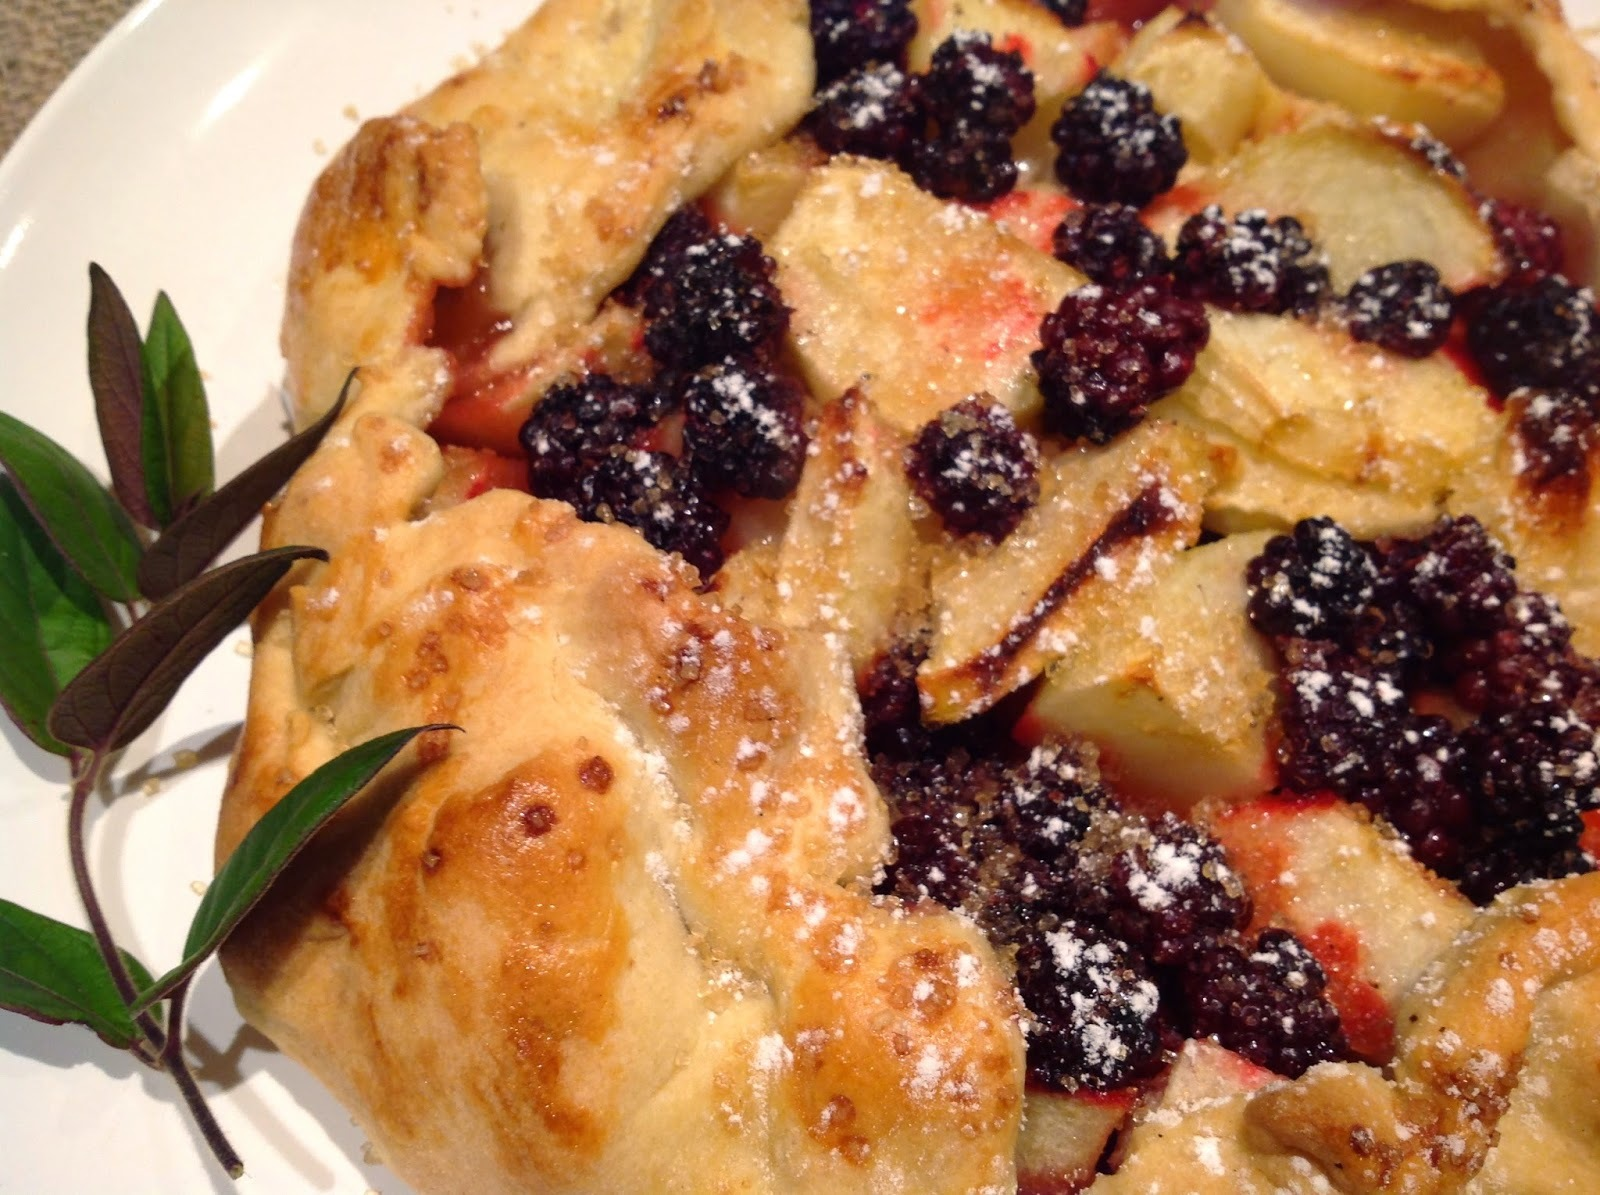 One-Crust Blackberry and Apple Pie